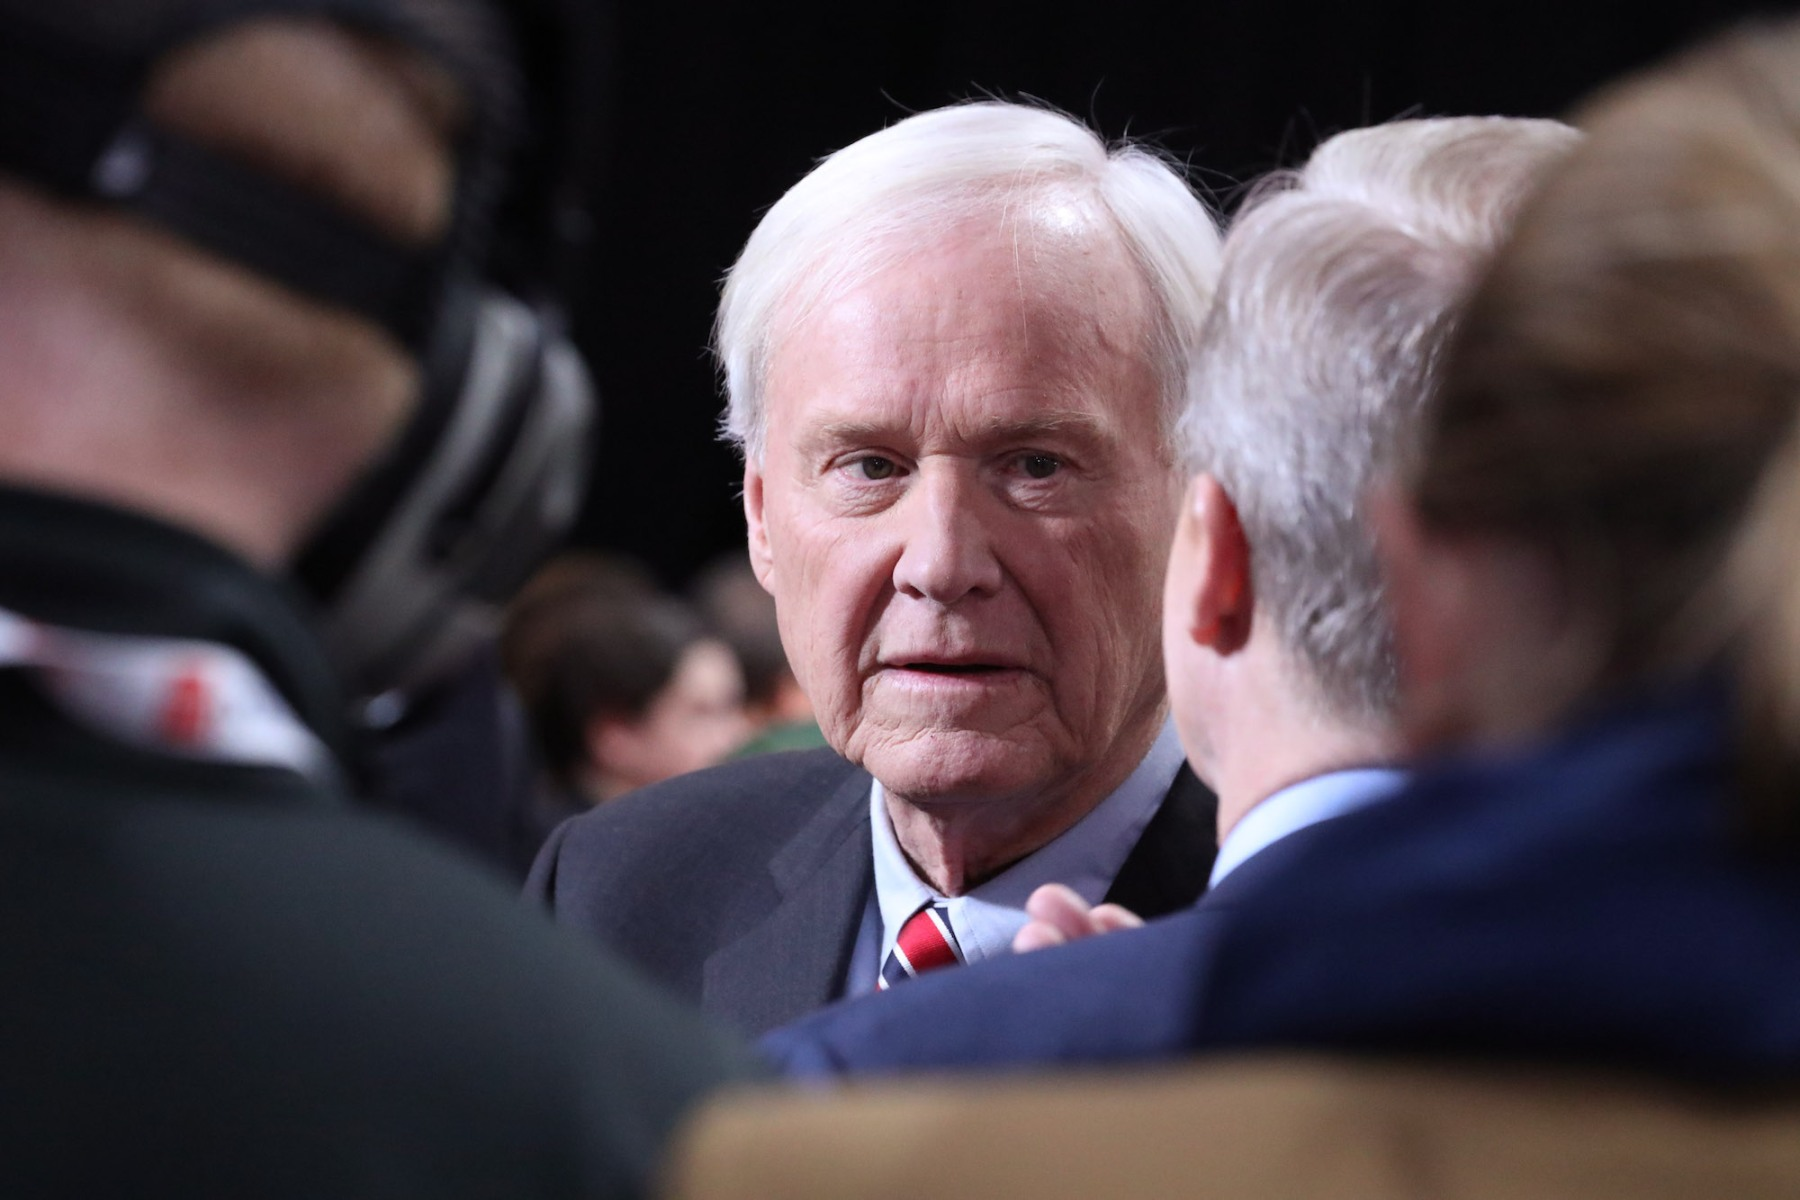 Chris Matthews Compares Sanders' Nevada Win to Nazis Conquering France